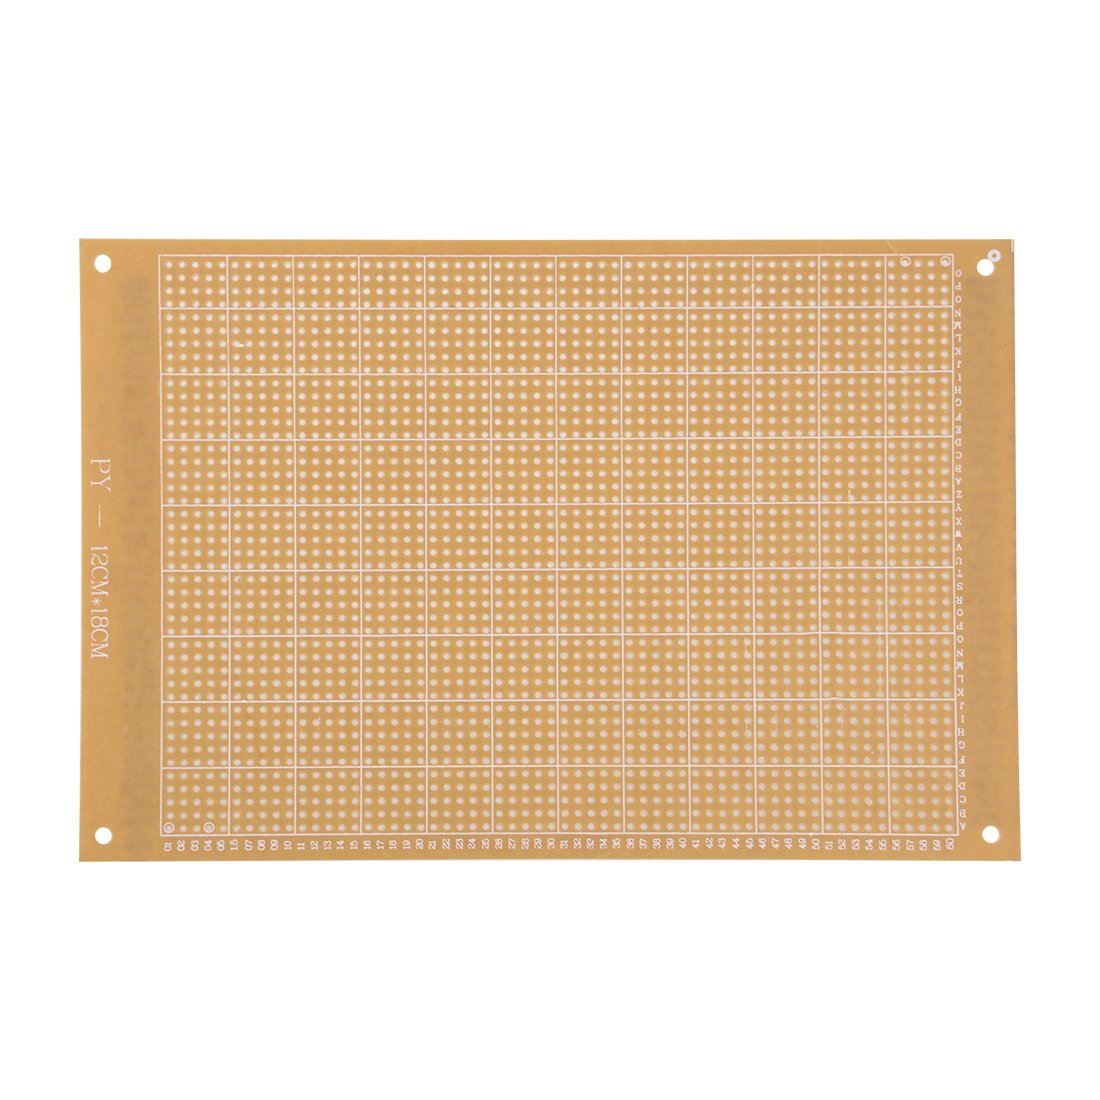 Uxcell a15091800ux0023 DIY Double Sided Copper Clad Laminate PCB Circuit Board 100x70 mm 12 Piece